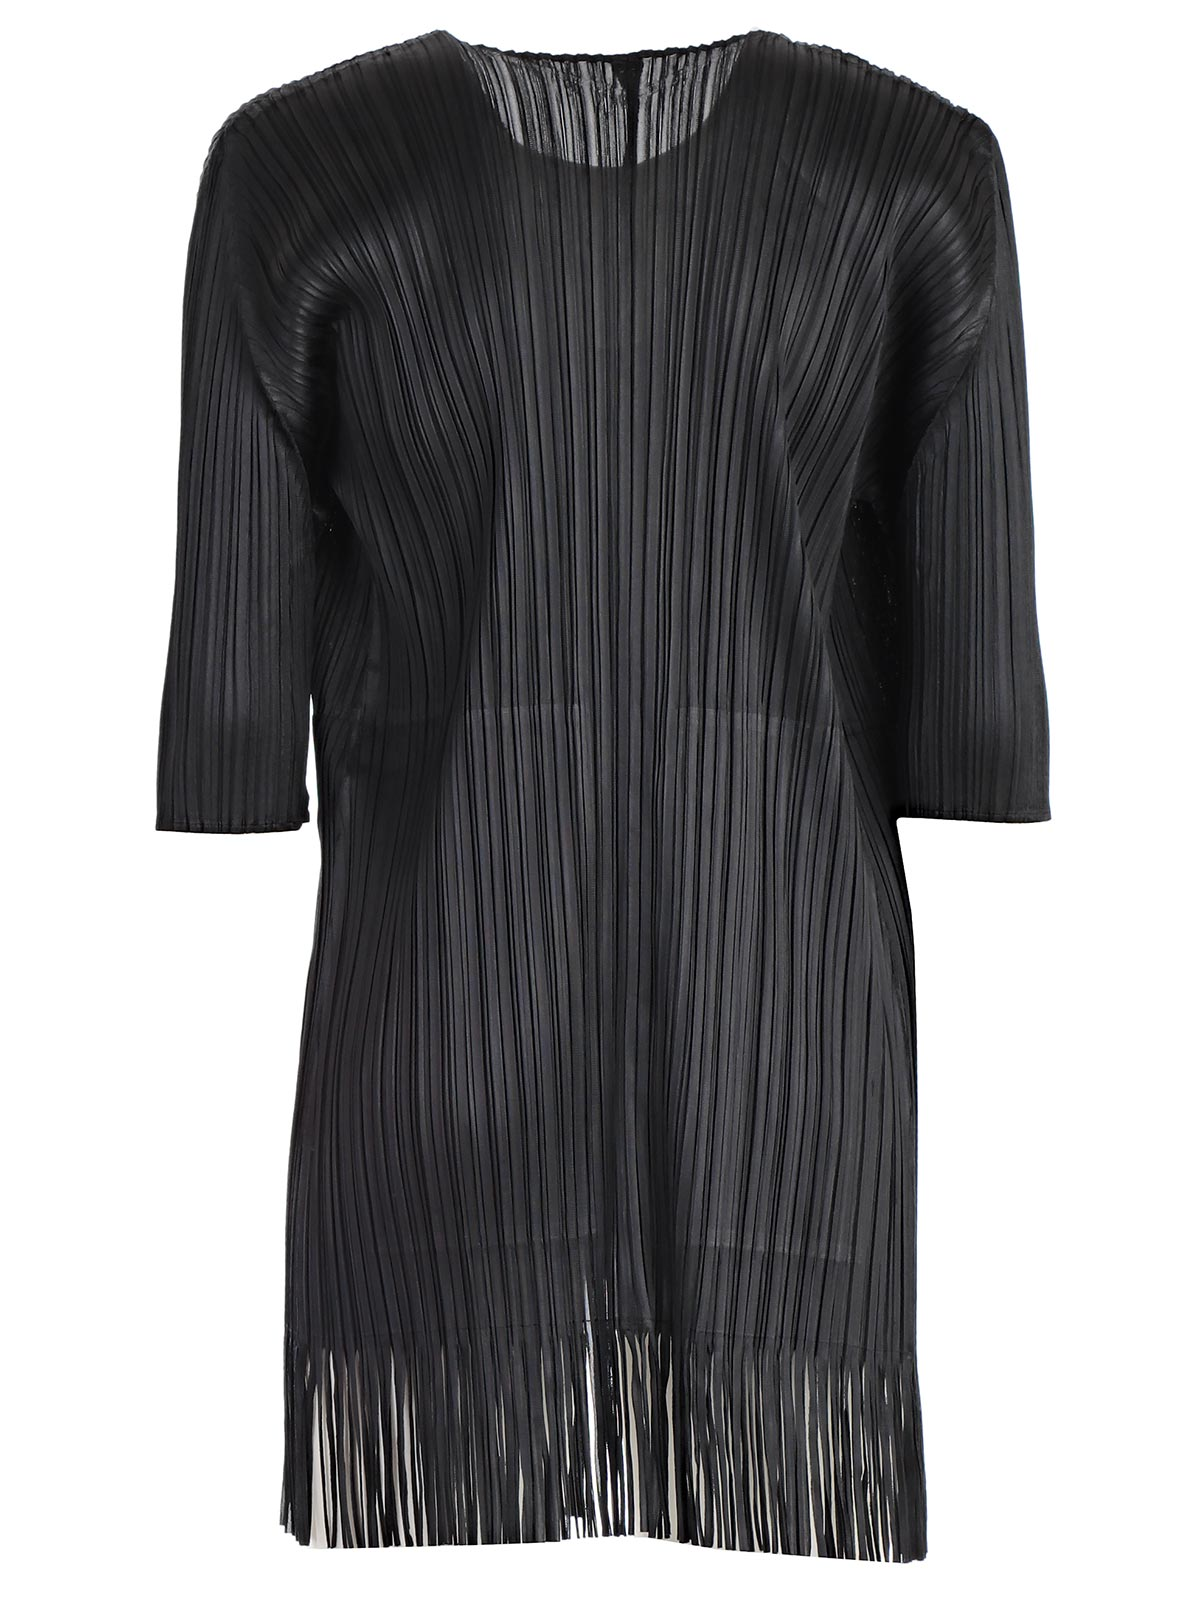 Picture of Pleats Please By Issey Miyake Single Breasted